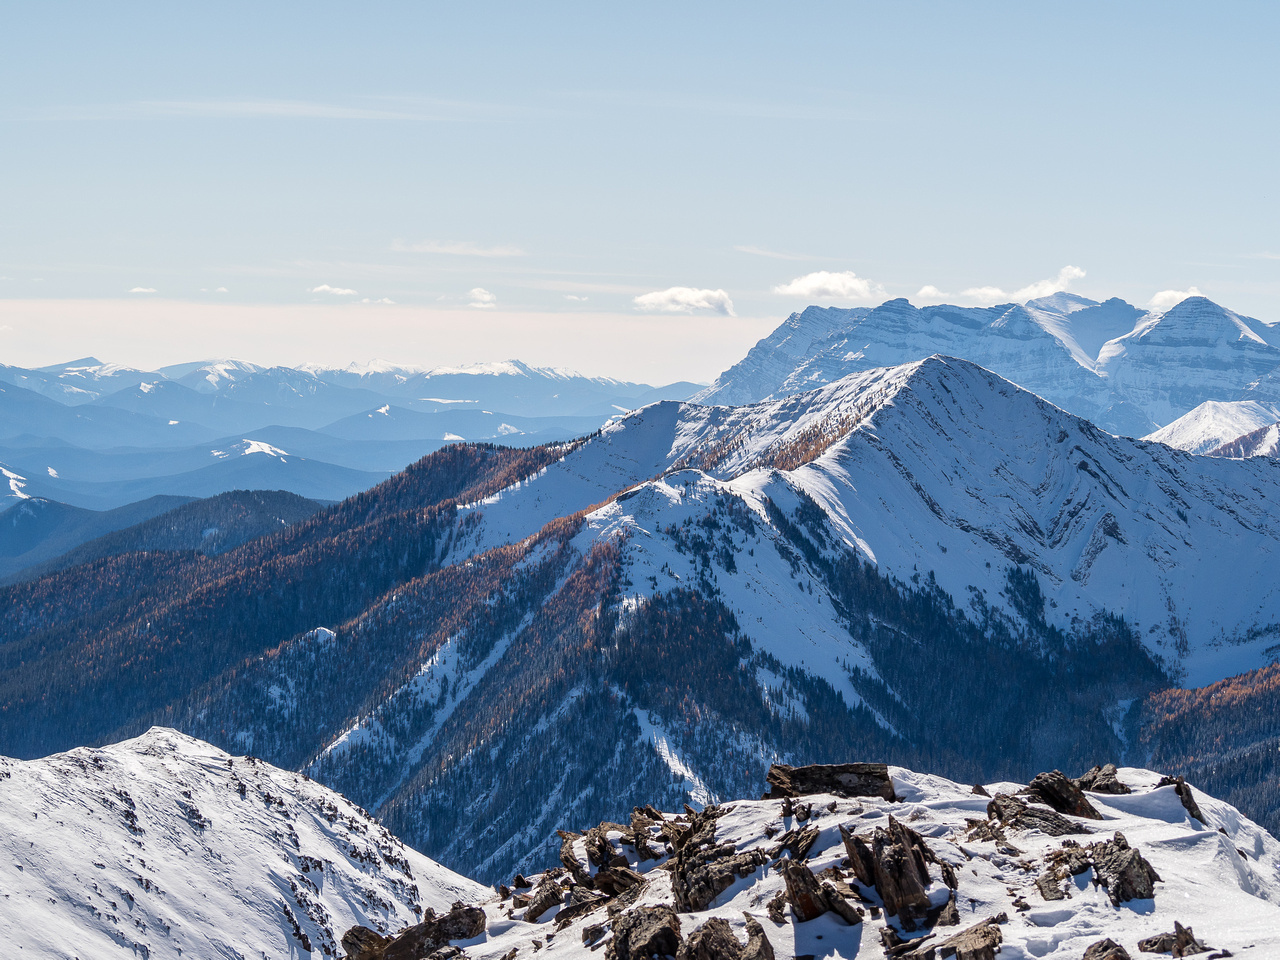 Looking south over Odlum Ridge towards Mount Muir and Strachan.